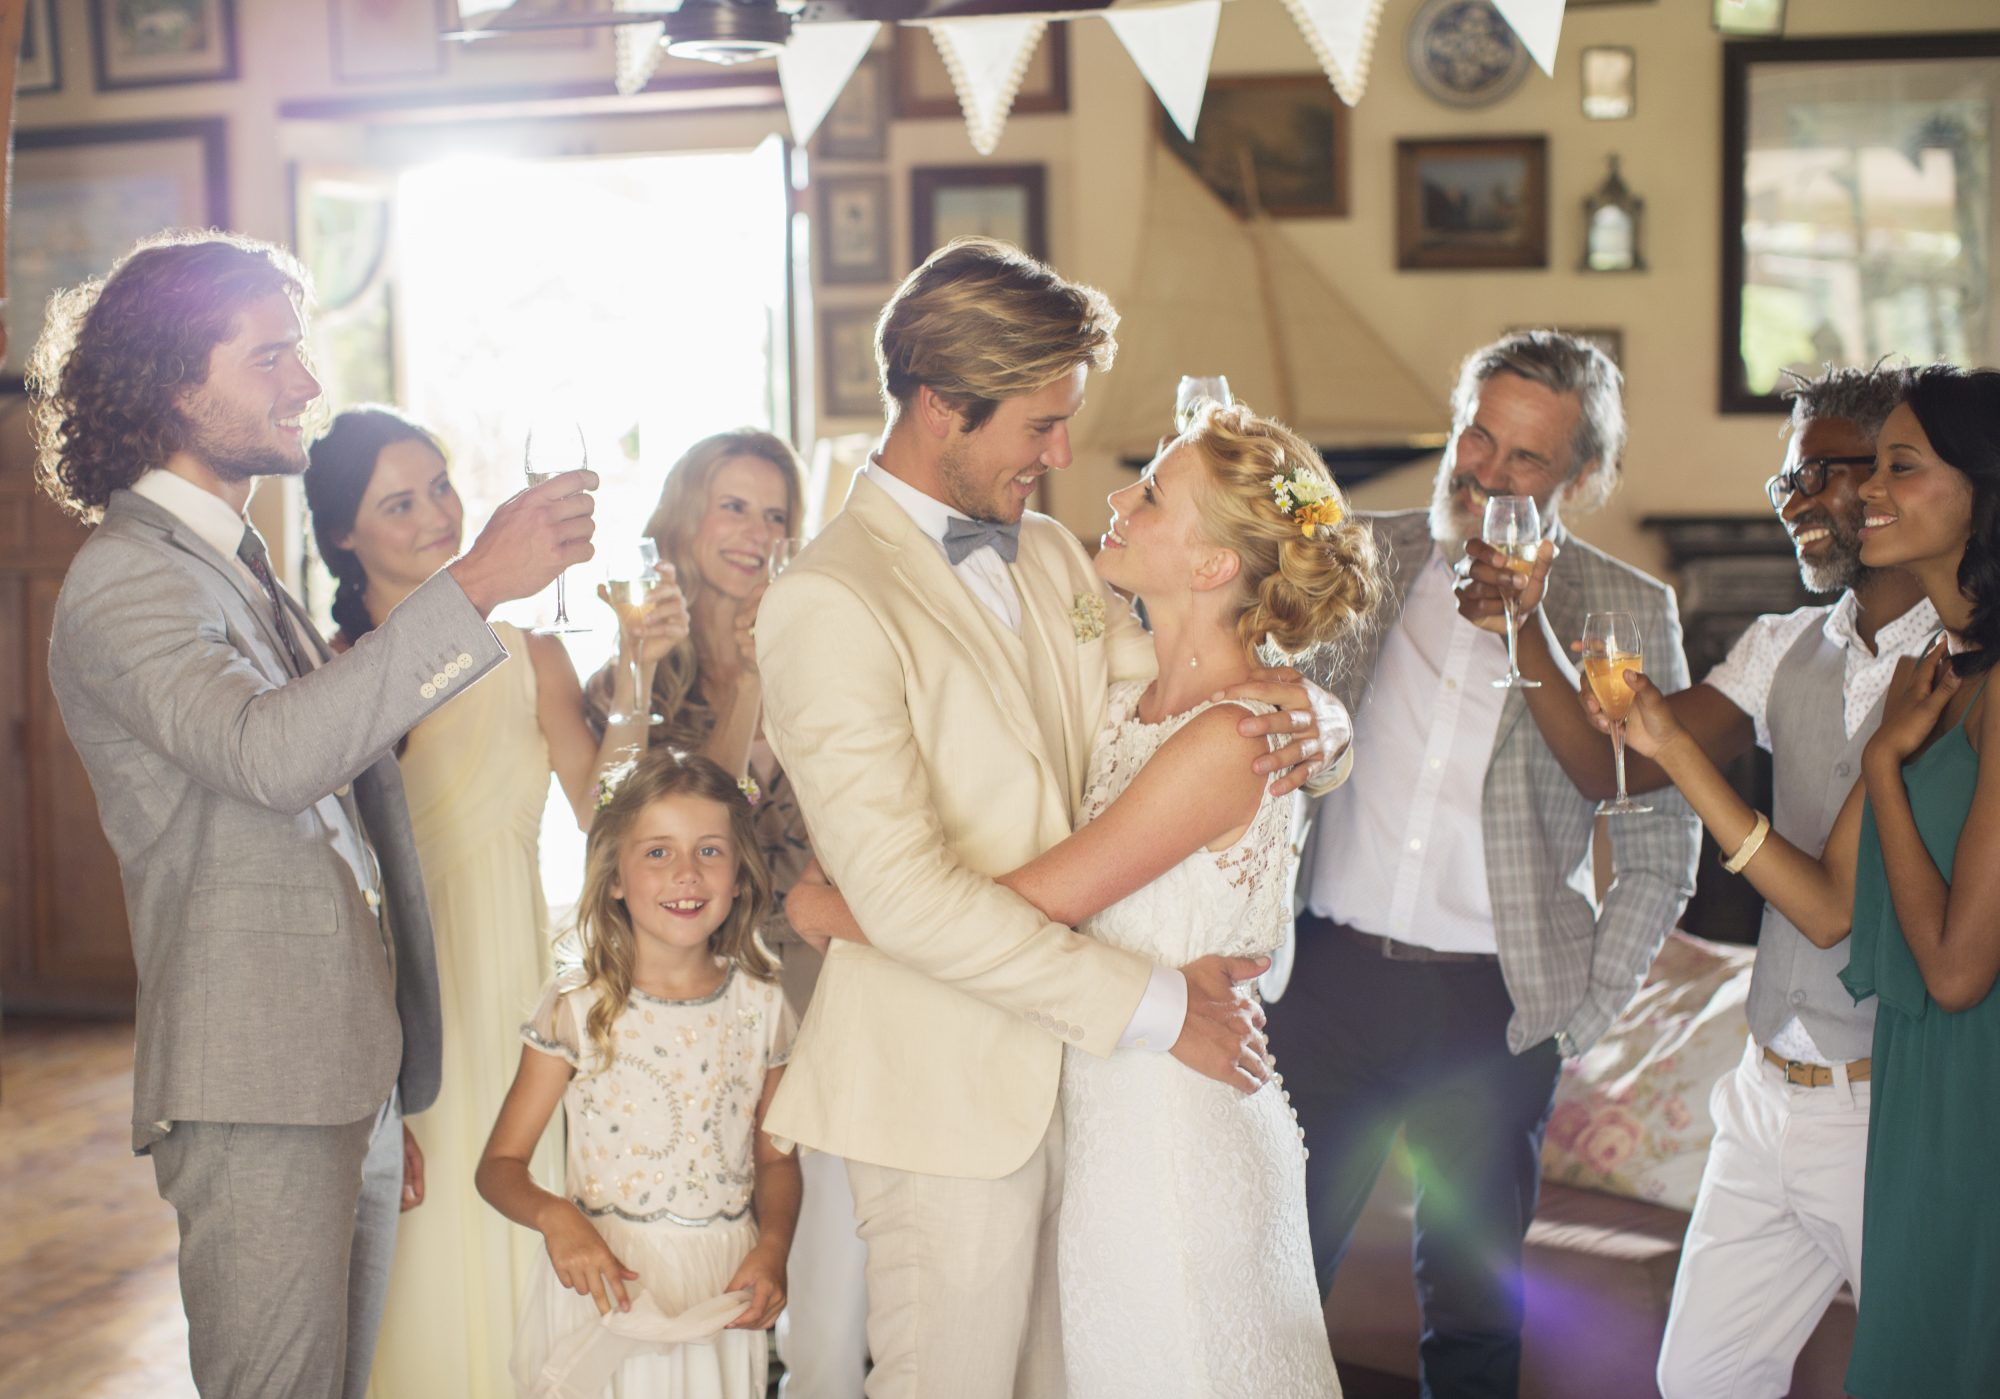 Whats Appropriate Wedding Day Attire For Guests Southern Living